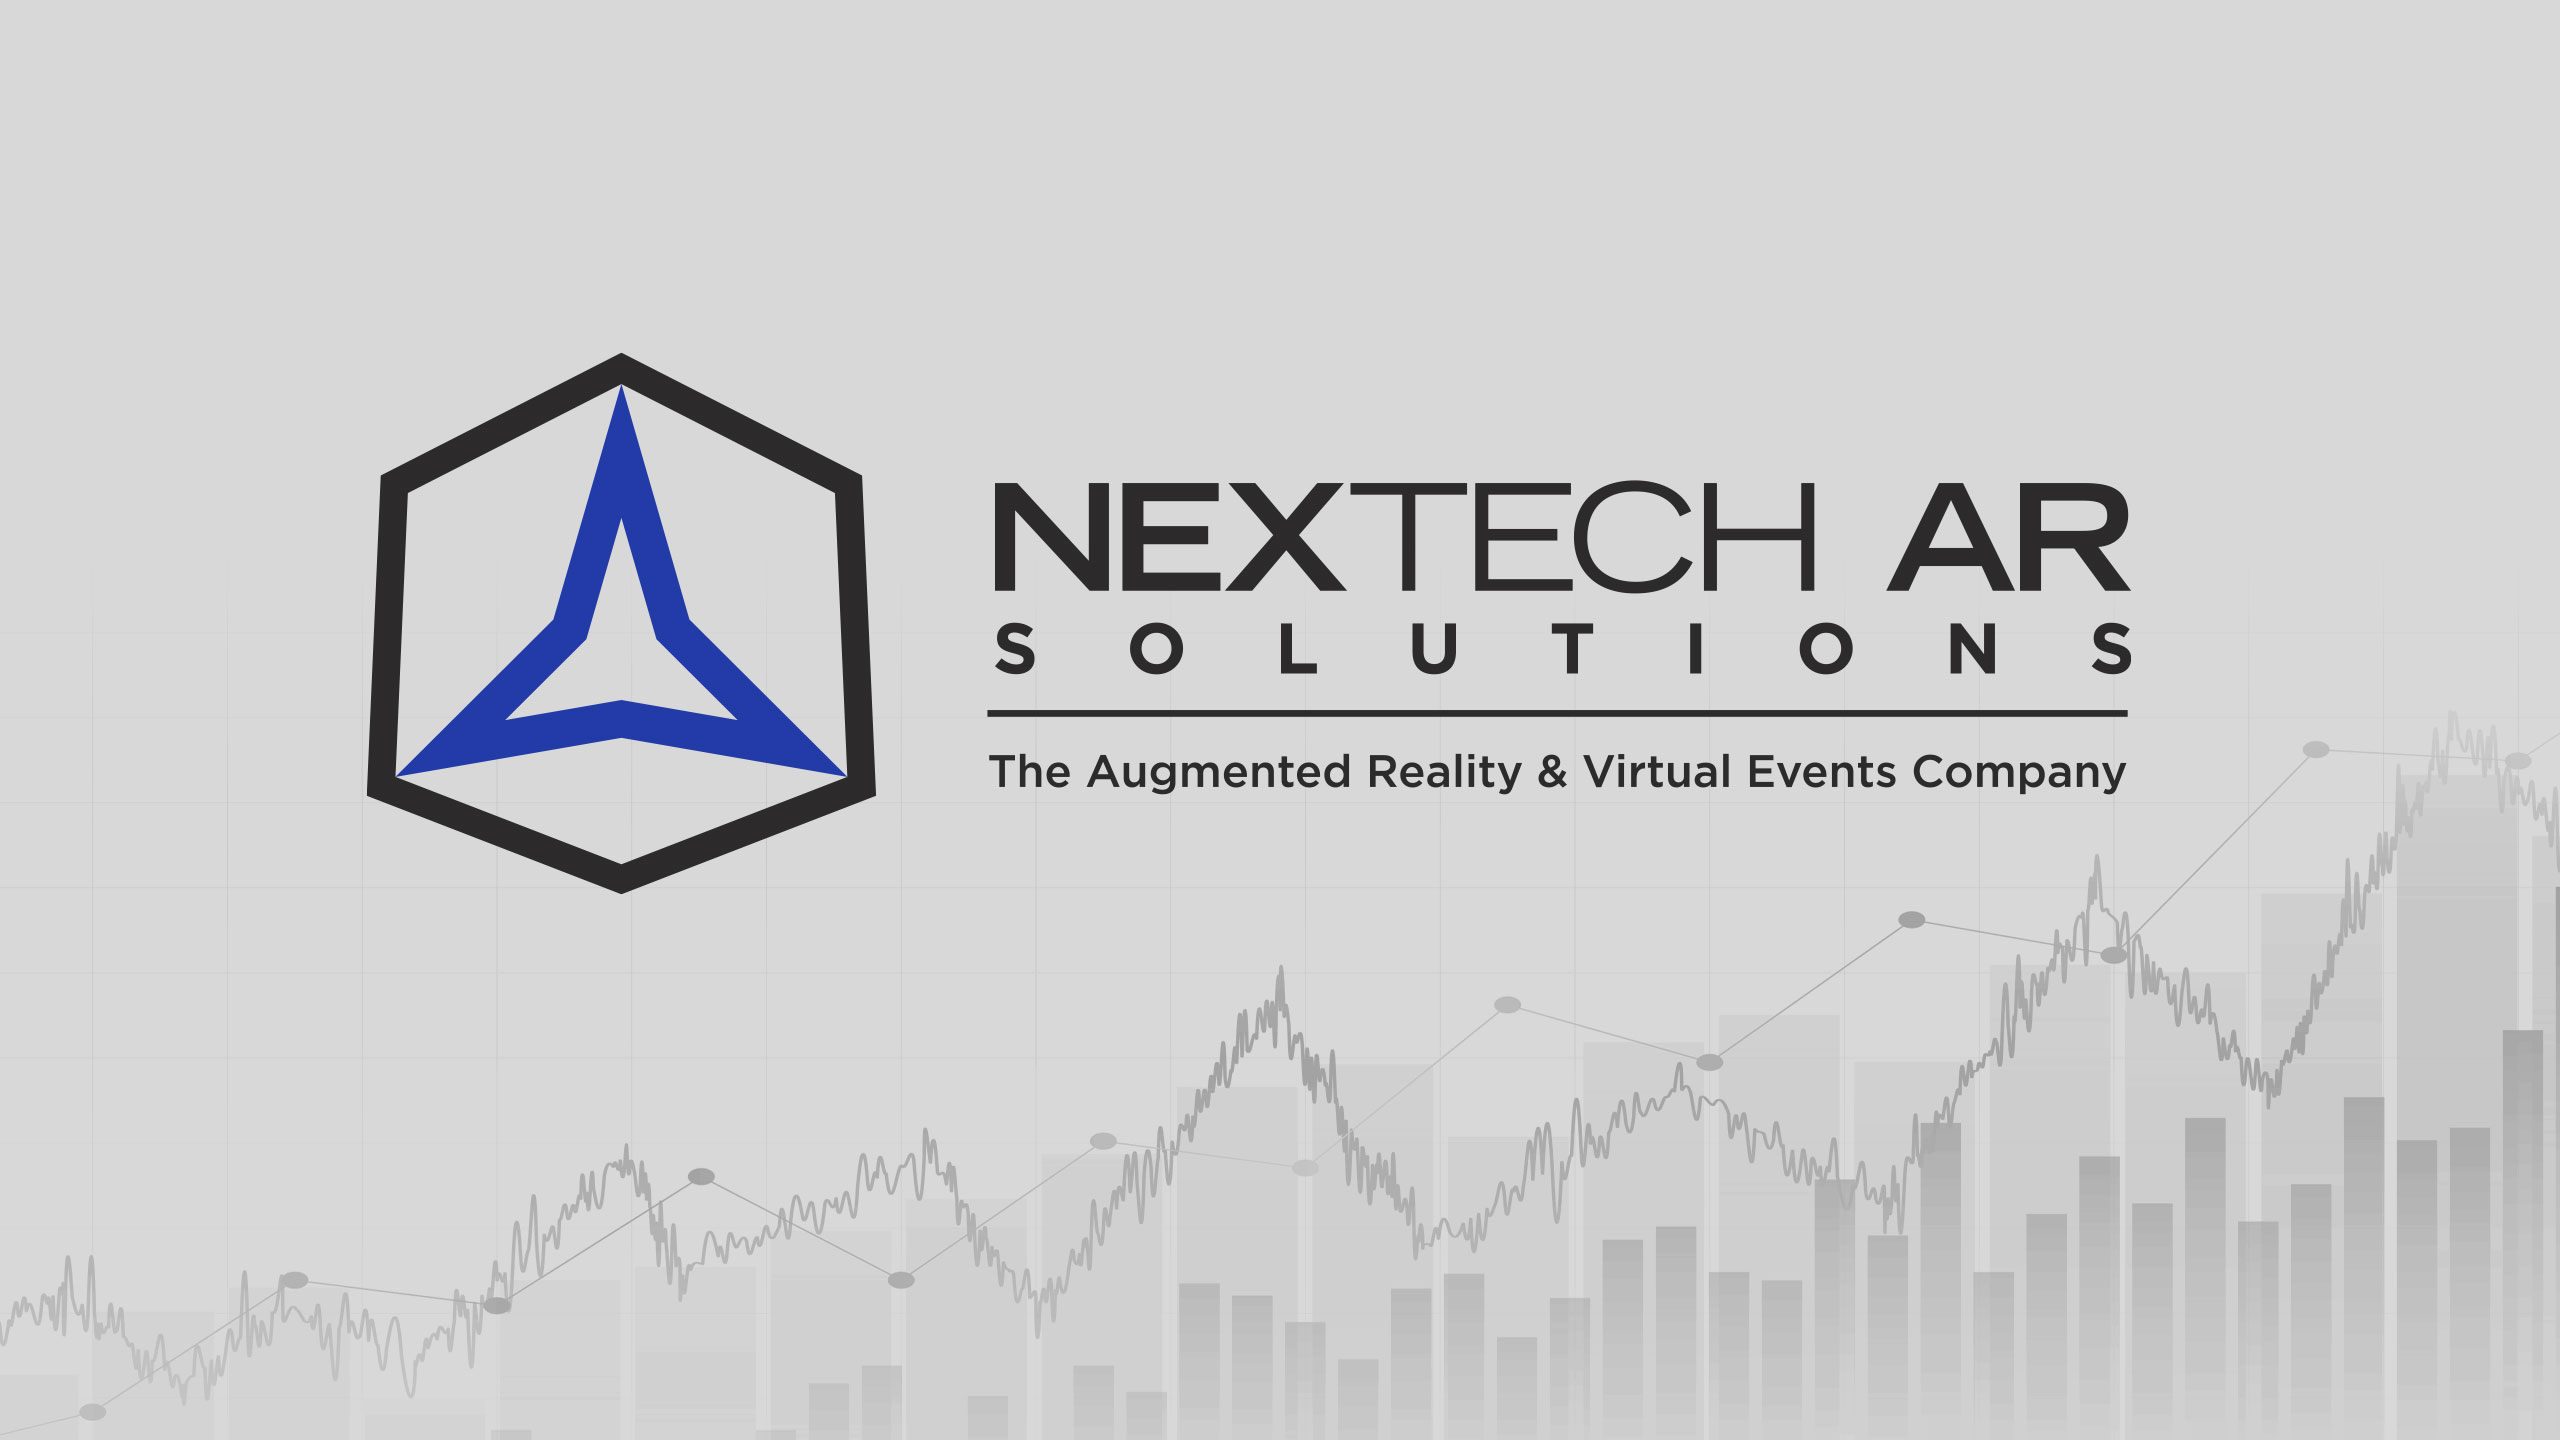 Nextech AR Solutions logo with chart